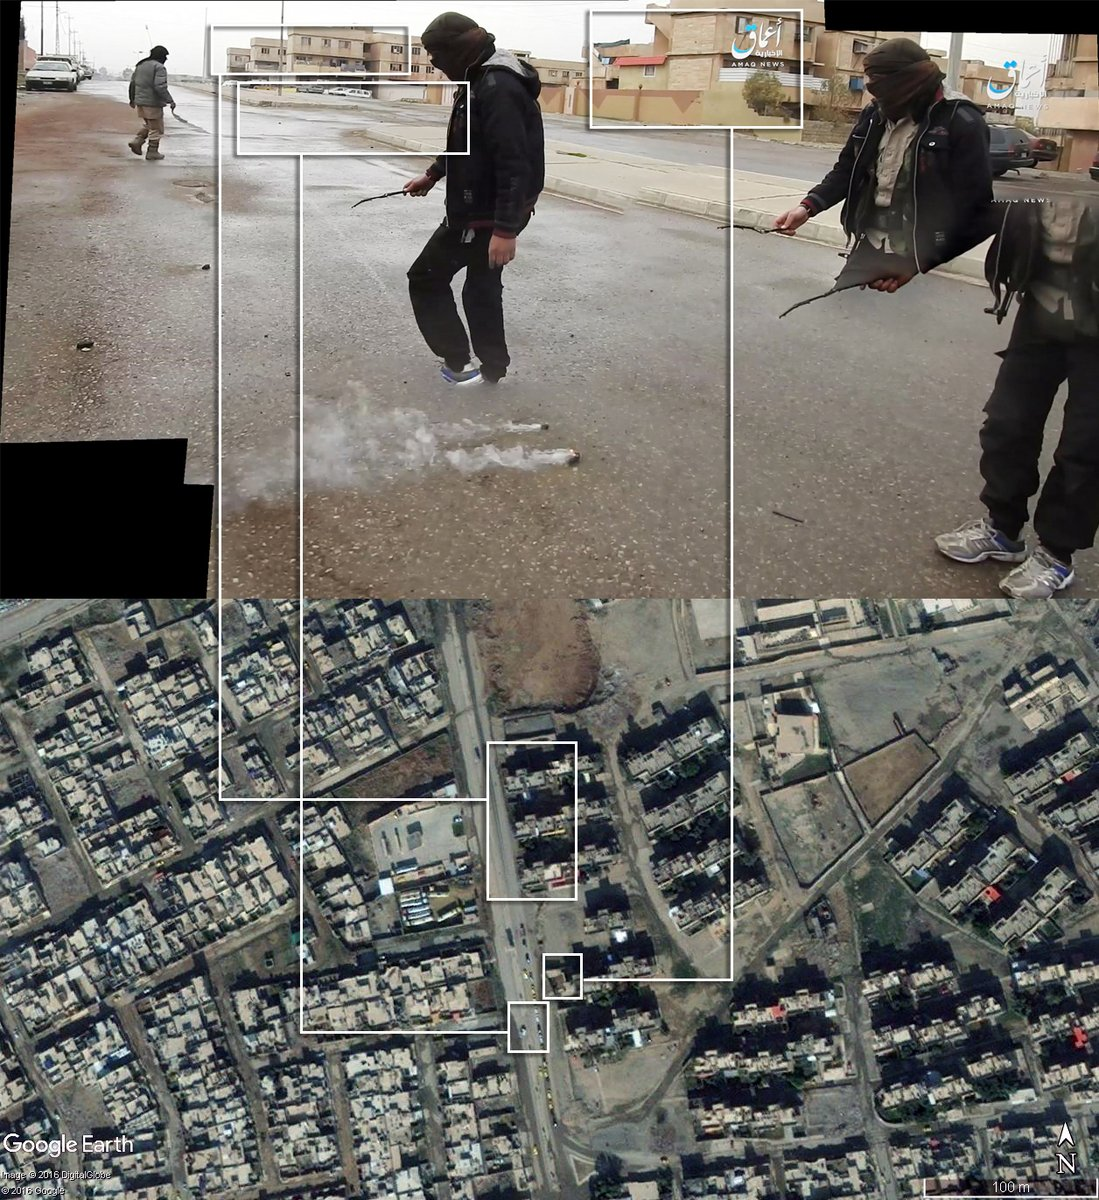 Bellingcat geolocated the March 10th 2017 use of white phosphorous against ISIL in urban Mosul